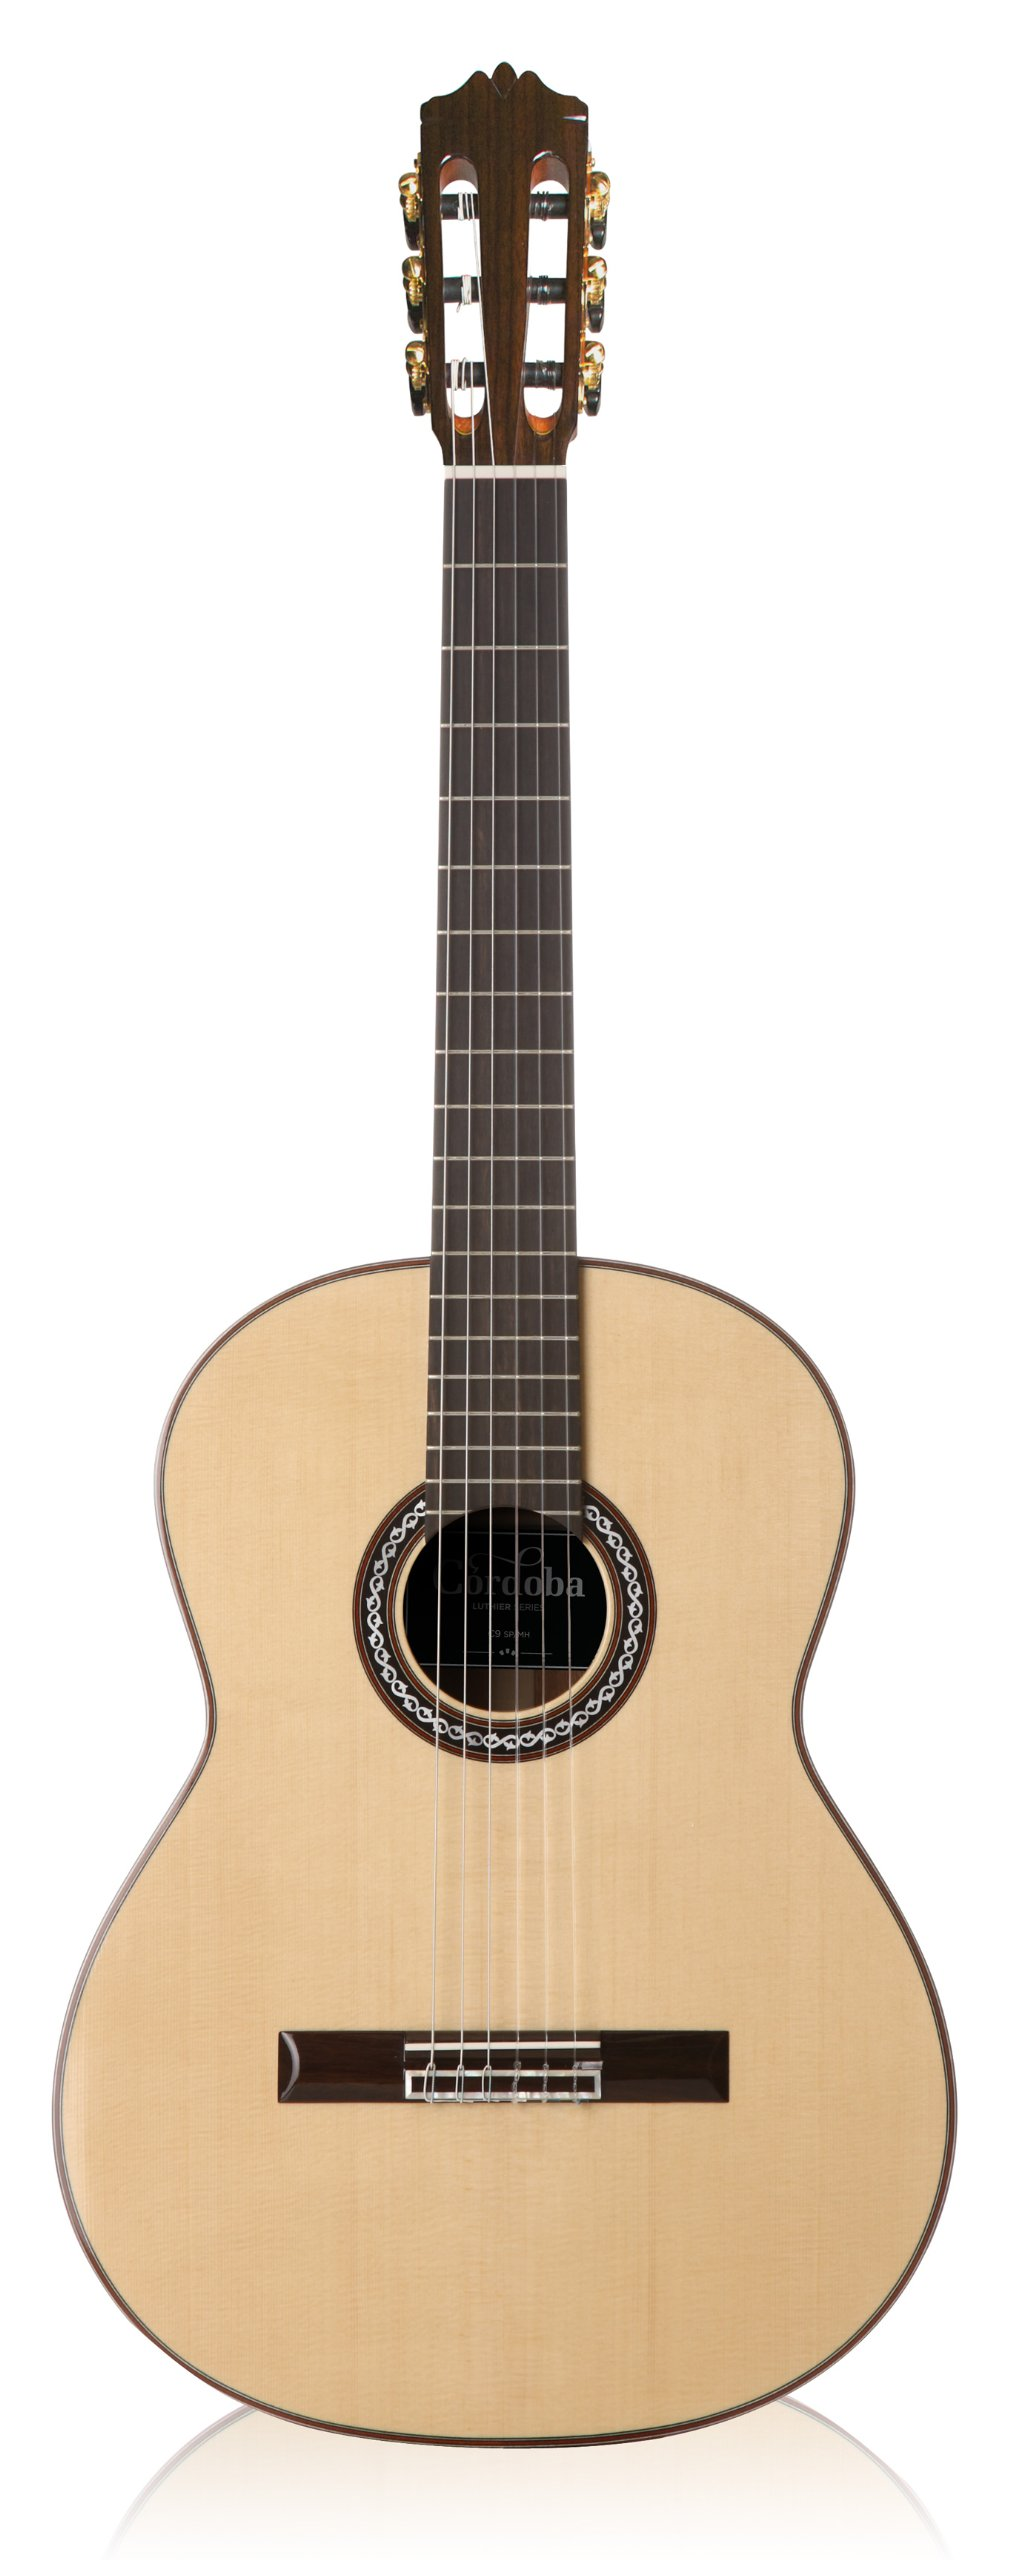 Cordoba C10 SP Acoustic Nylon String Classical Guitar